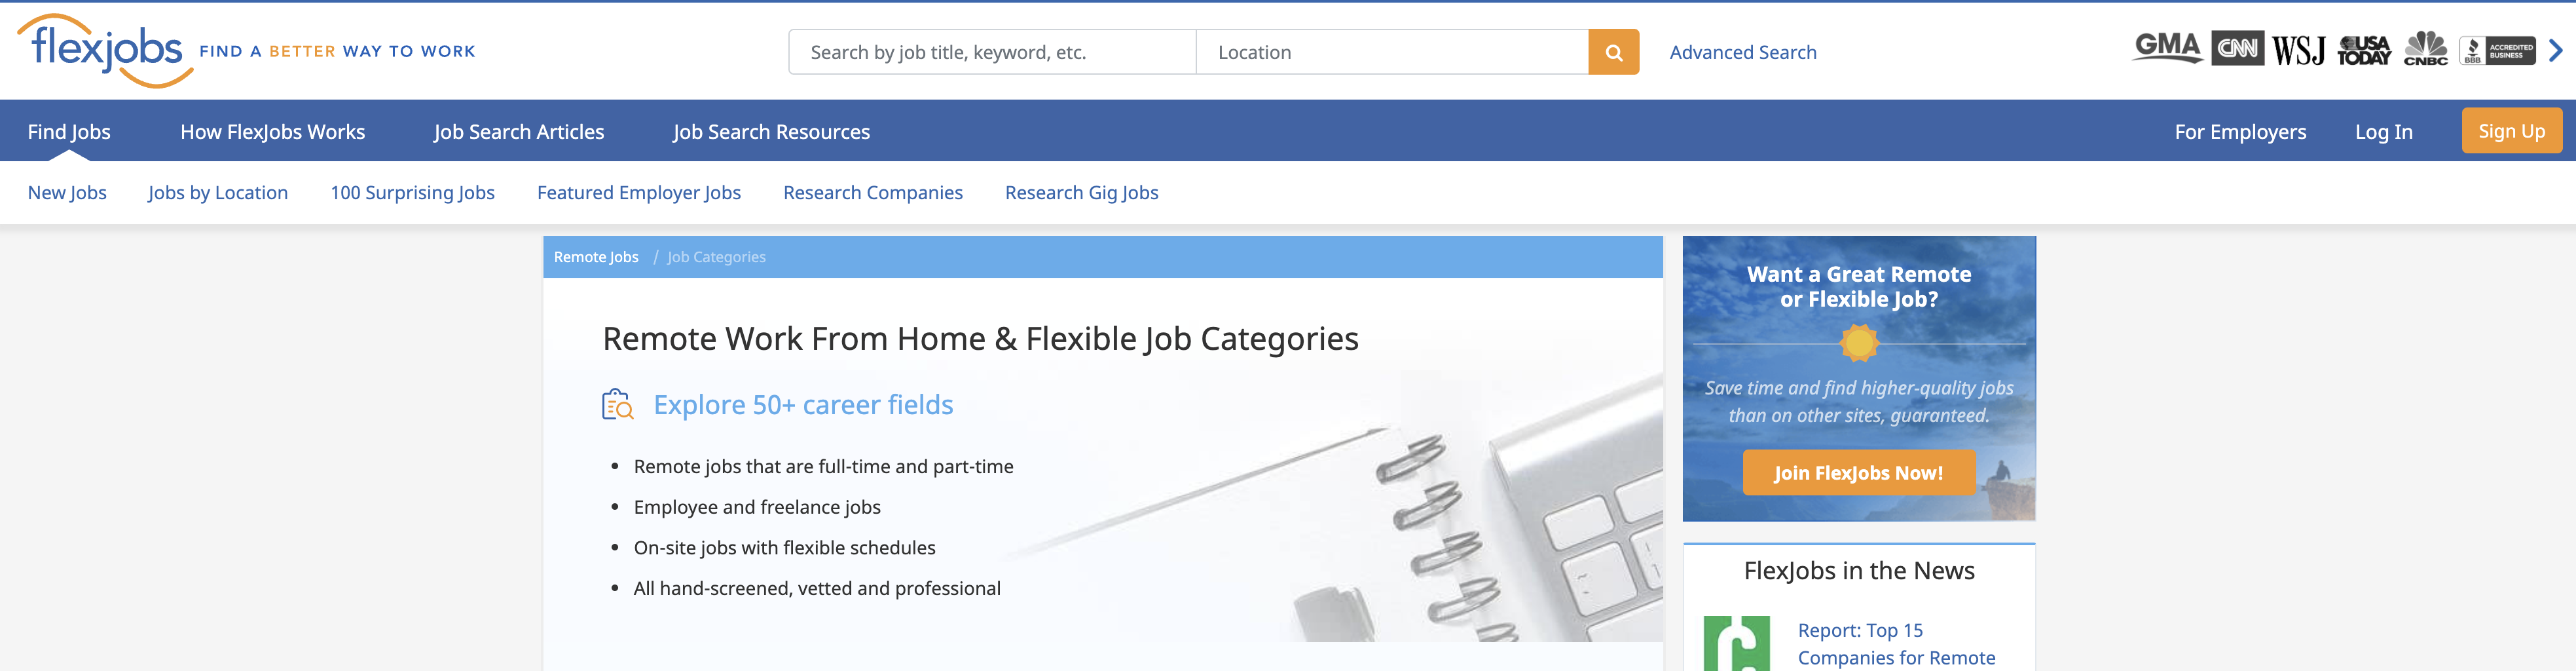 10 Best Sites to Find Remote Jobs During COVID-19